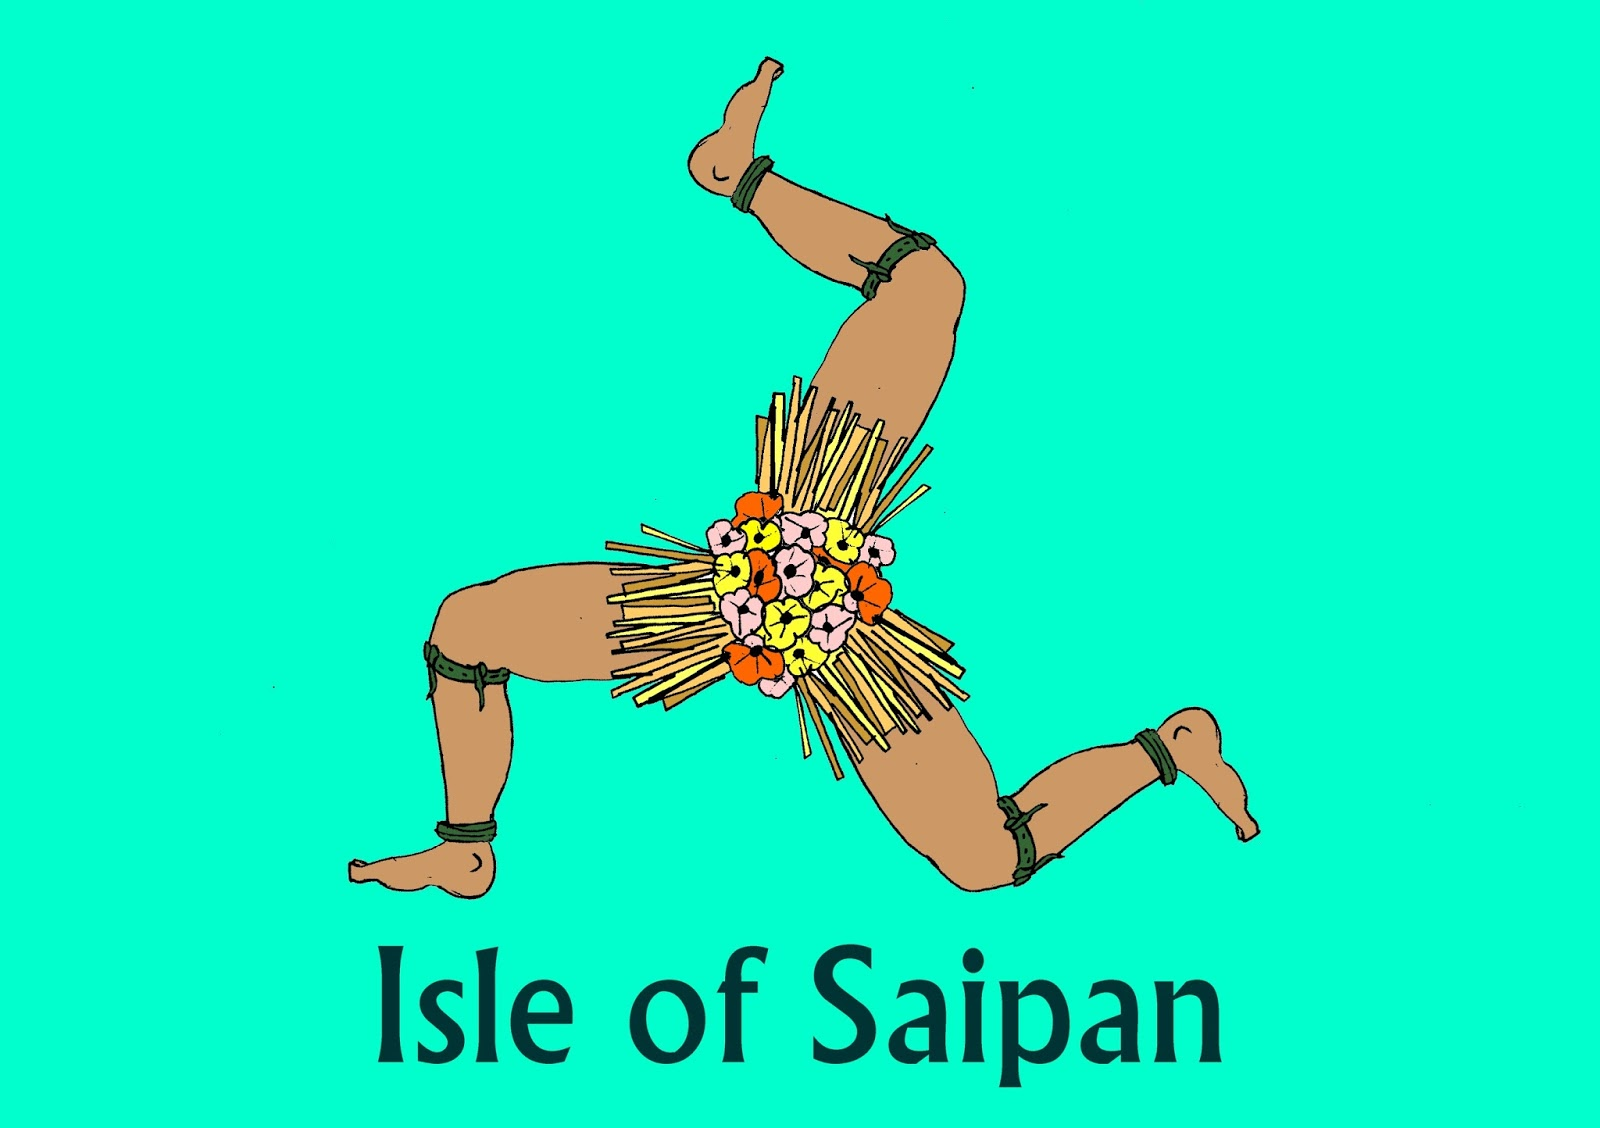 the voice of vexillology flags heraldry isle of saipan flag